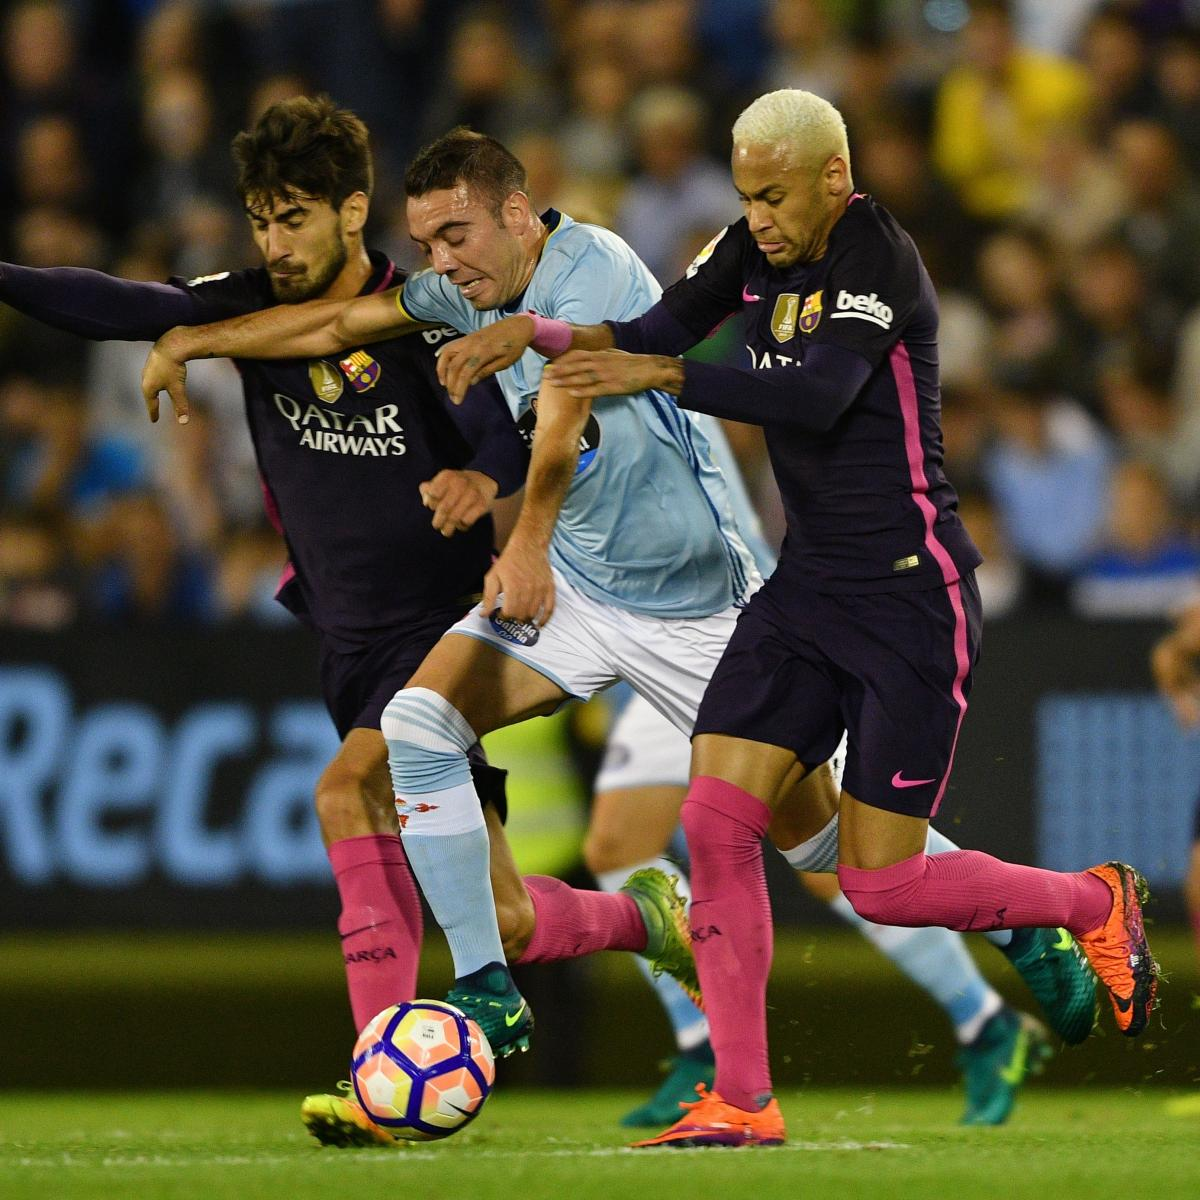 Celta Vigo Vs. Barcelona: Score And Reaction From 2016 La